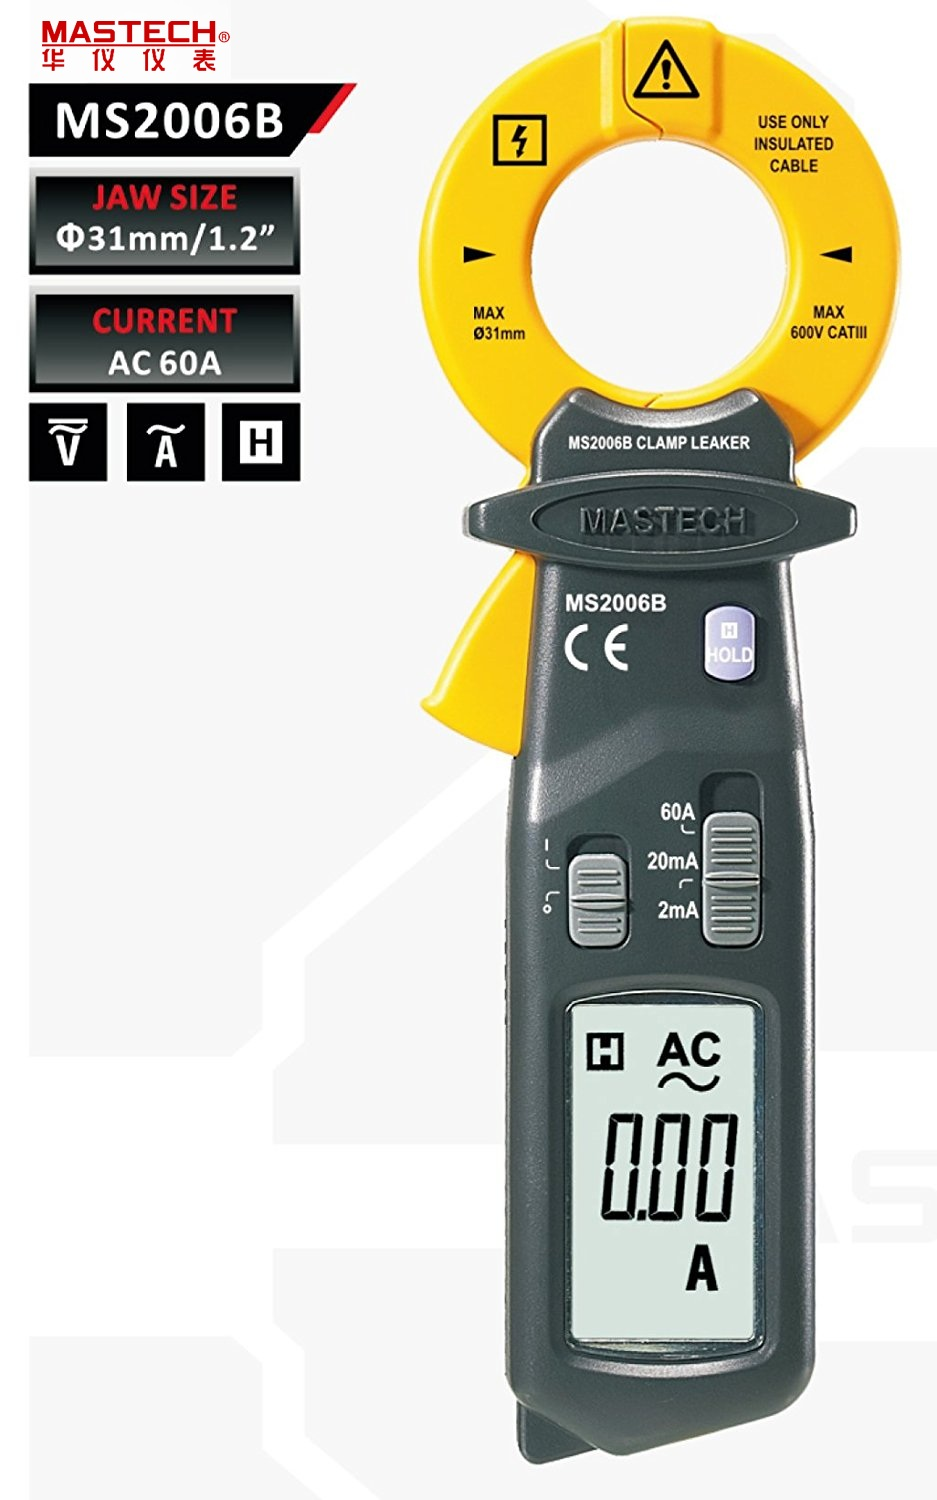 2017 New Brand New MASTECH MS2006B Digital Clamp Meters AC Current Tester AC Leakage Clamp Meter 0.001mA Resolution etcr6800 large diameter clamp leakage current meter leakage current tester clamp meter